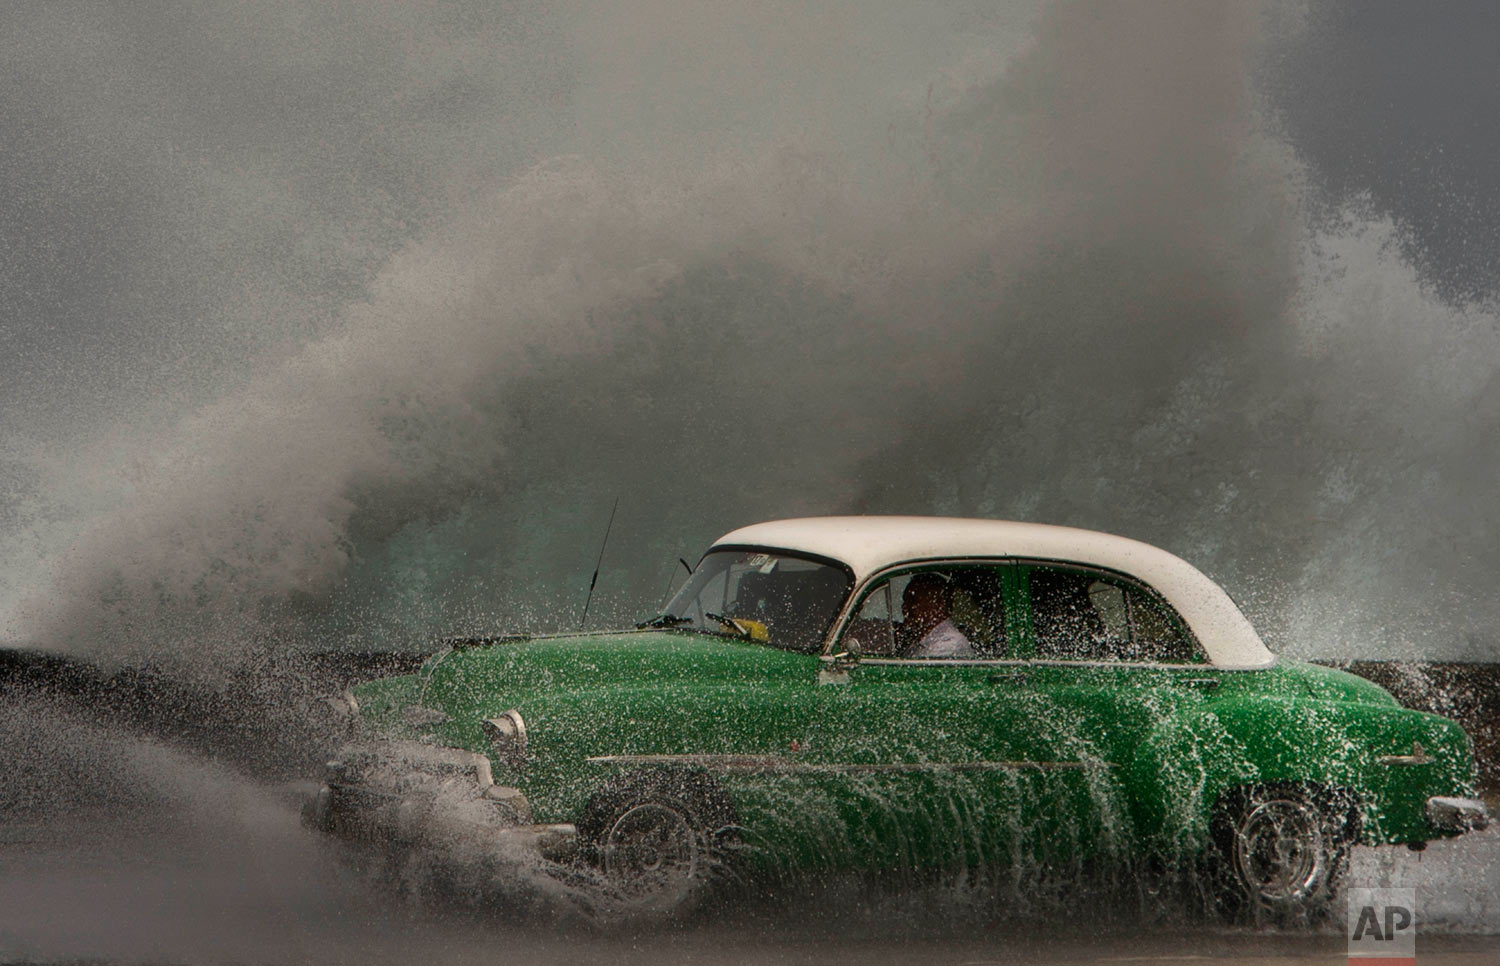 In this March 19, 2019 photo, waves crash against the Malecon sea wall as a taxi drives past in a classic American car in Havana, Cuba. (AP Photo/Ramon Espinosa)